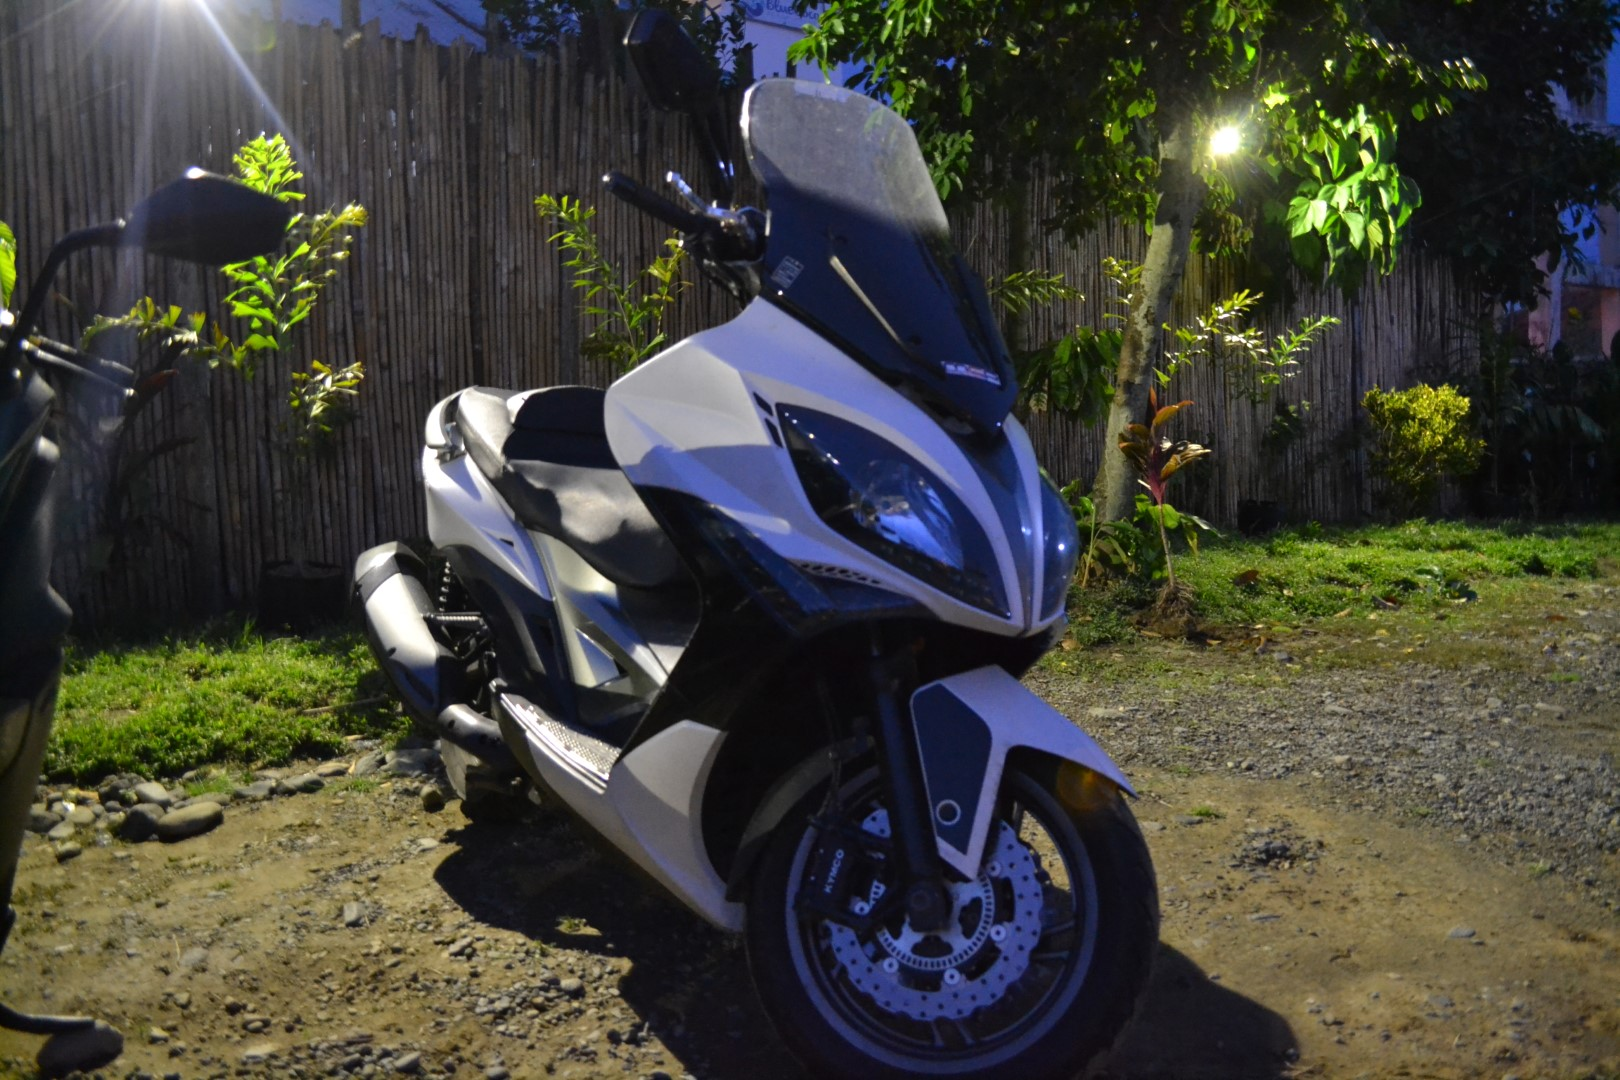 Kymco Philippines Inc Charity Ride To Tuloy Foundation